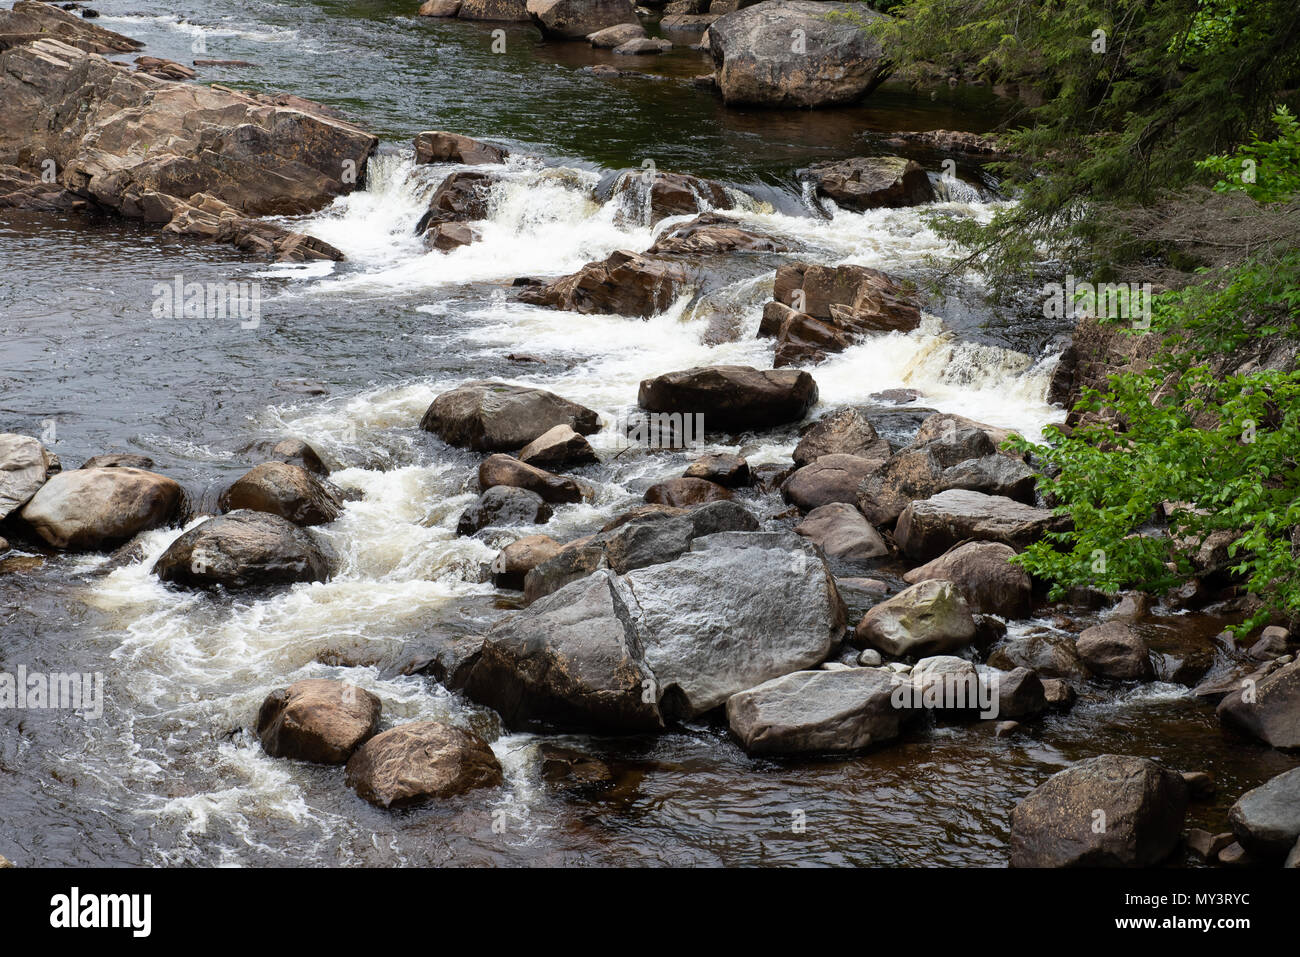 Waterfalls on the East Branch of the Sacandaga River above the Griffin Gorge in the Town of Wells, NY USA - Stock Image